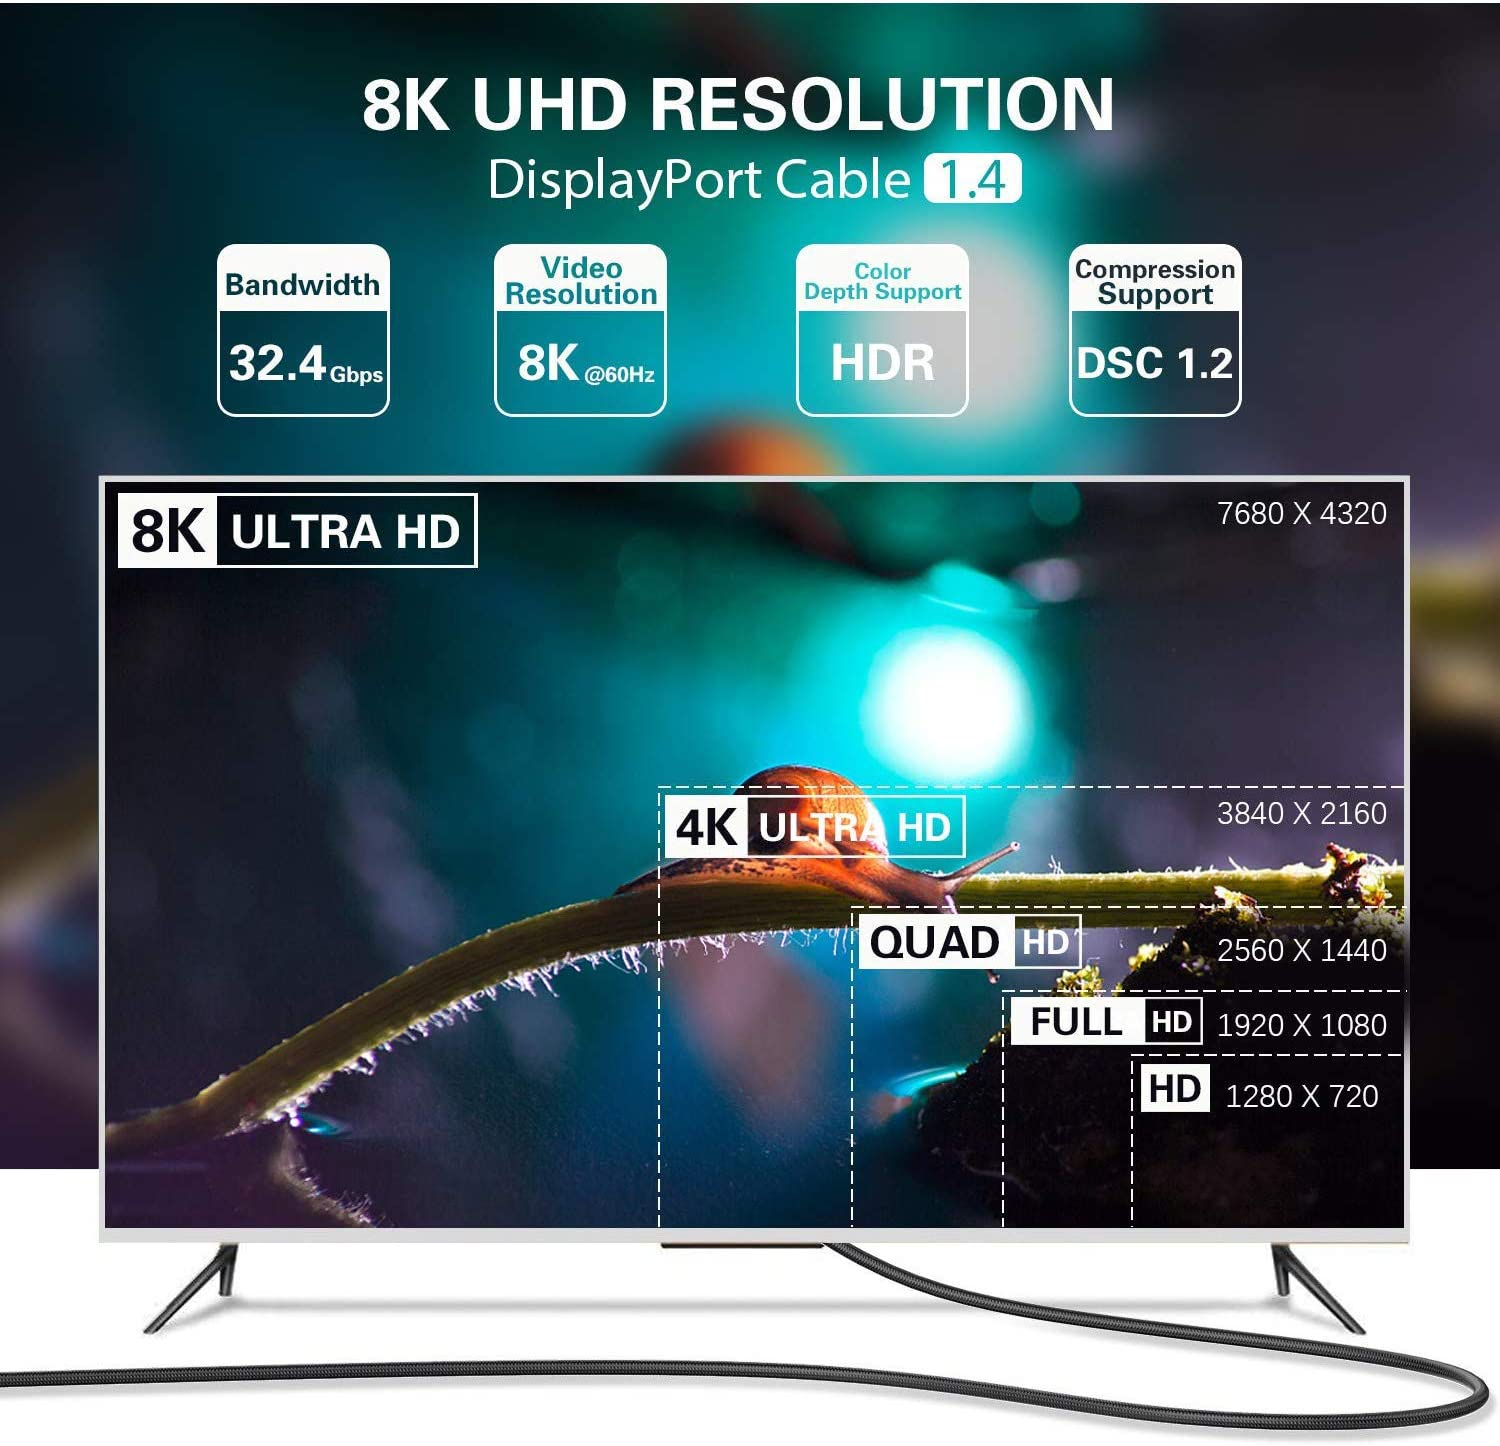 Cable Supports 8K 60Hz BUSOHE Braided DisplayPort 8K DisplayPort 1.4 Cable 3m to DisplayPort DP 4K 144Hz and HBR3 Black DP